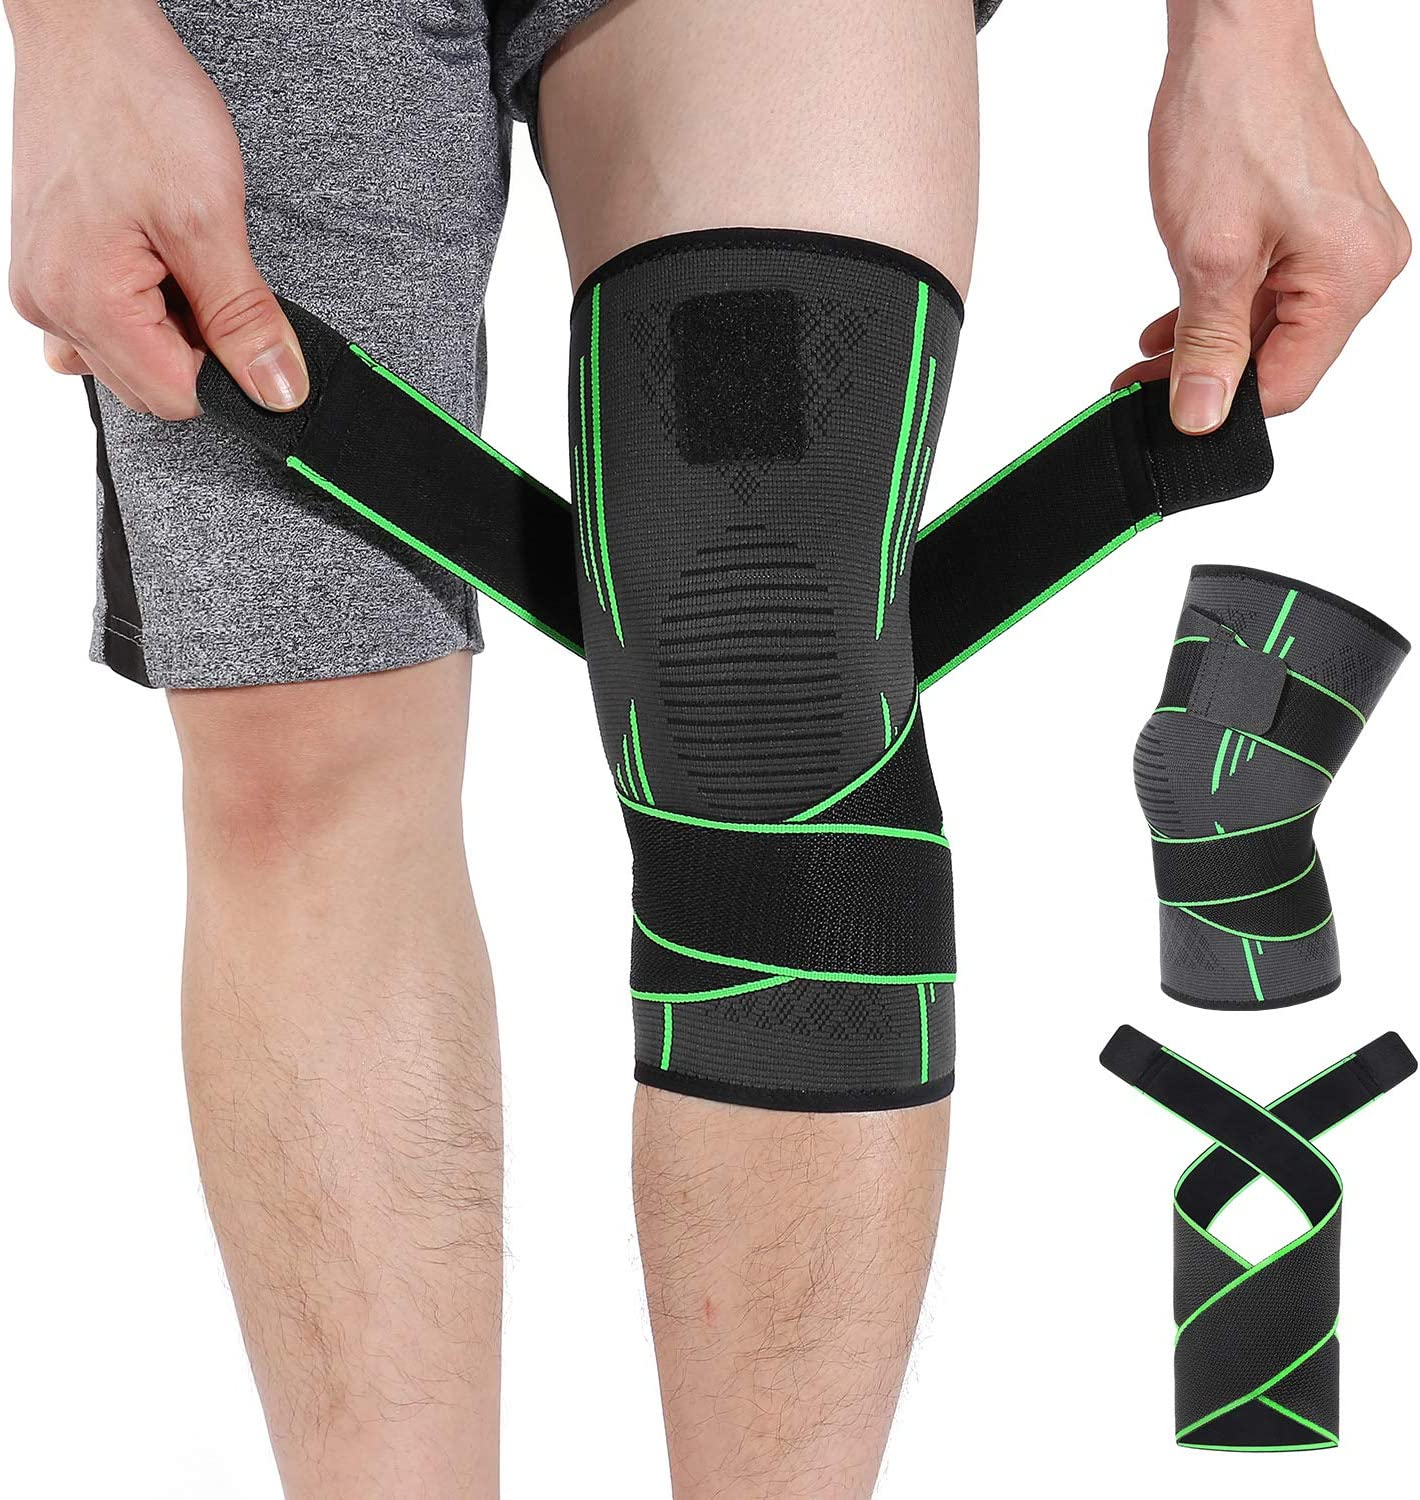 HOMPO Knee Brace National products Compression Kne Adjustable Non-Slip Max 65% OFF Sleeve